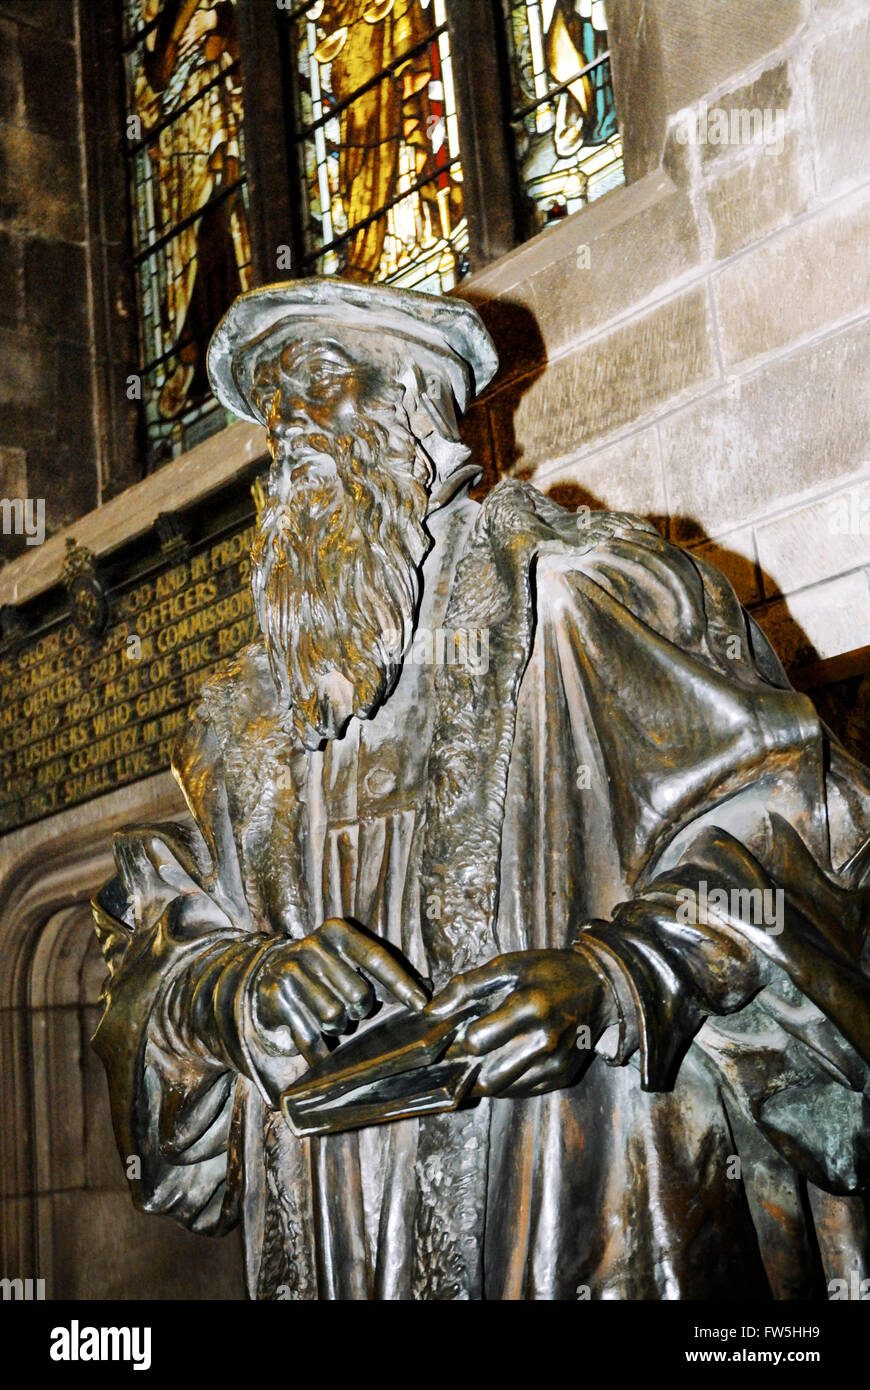 Statue of John Knox, religious reformer, Edinburgh, The Royal Mile, St. Giles Cathedral,  High Kirk - Stock Image